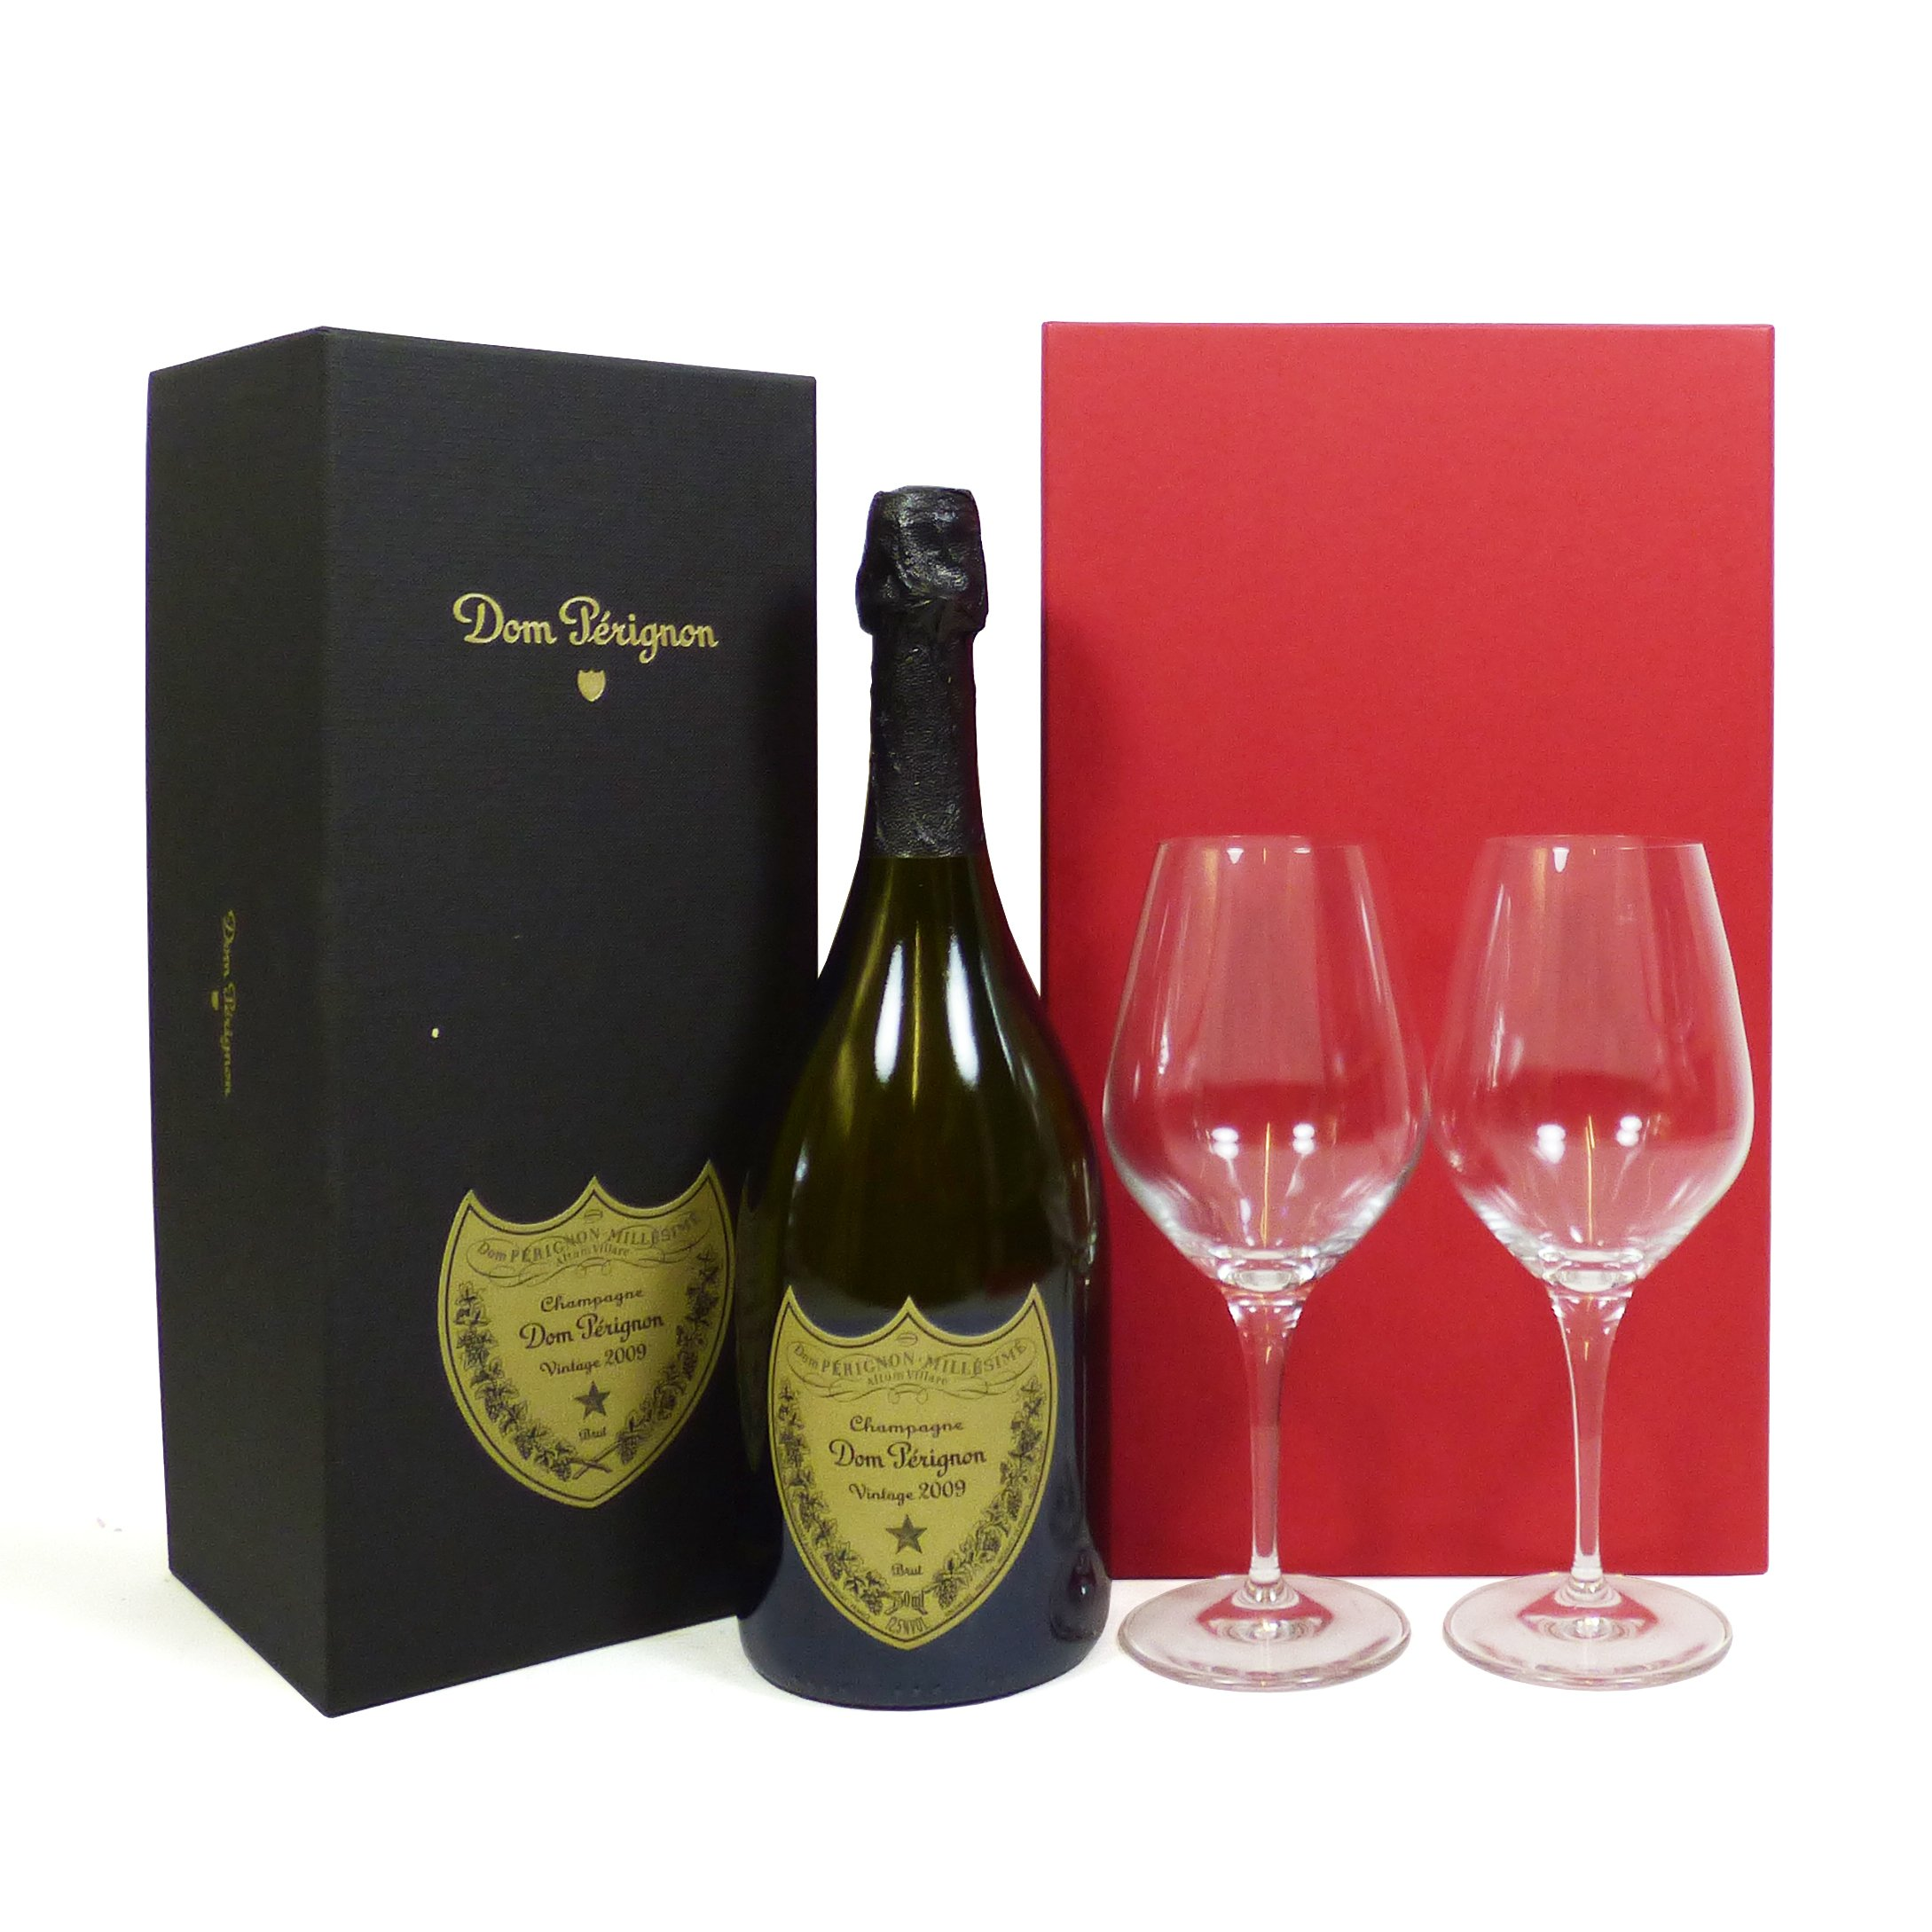 75cl Dom Perignon Champagne Box 2009 Vintage and 2 x Dom Perignon Glasses presented in a Red and Silver Box – Ideas for…